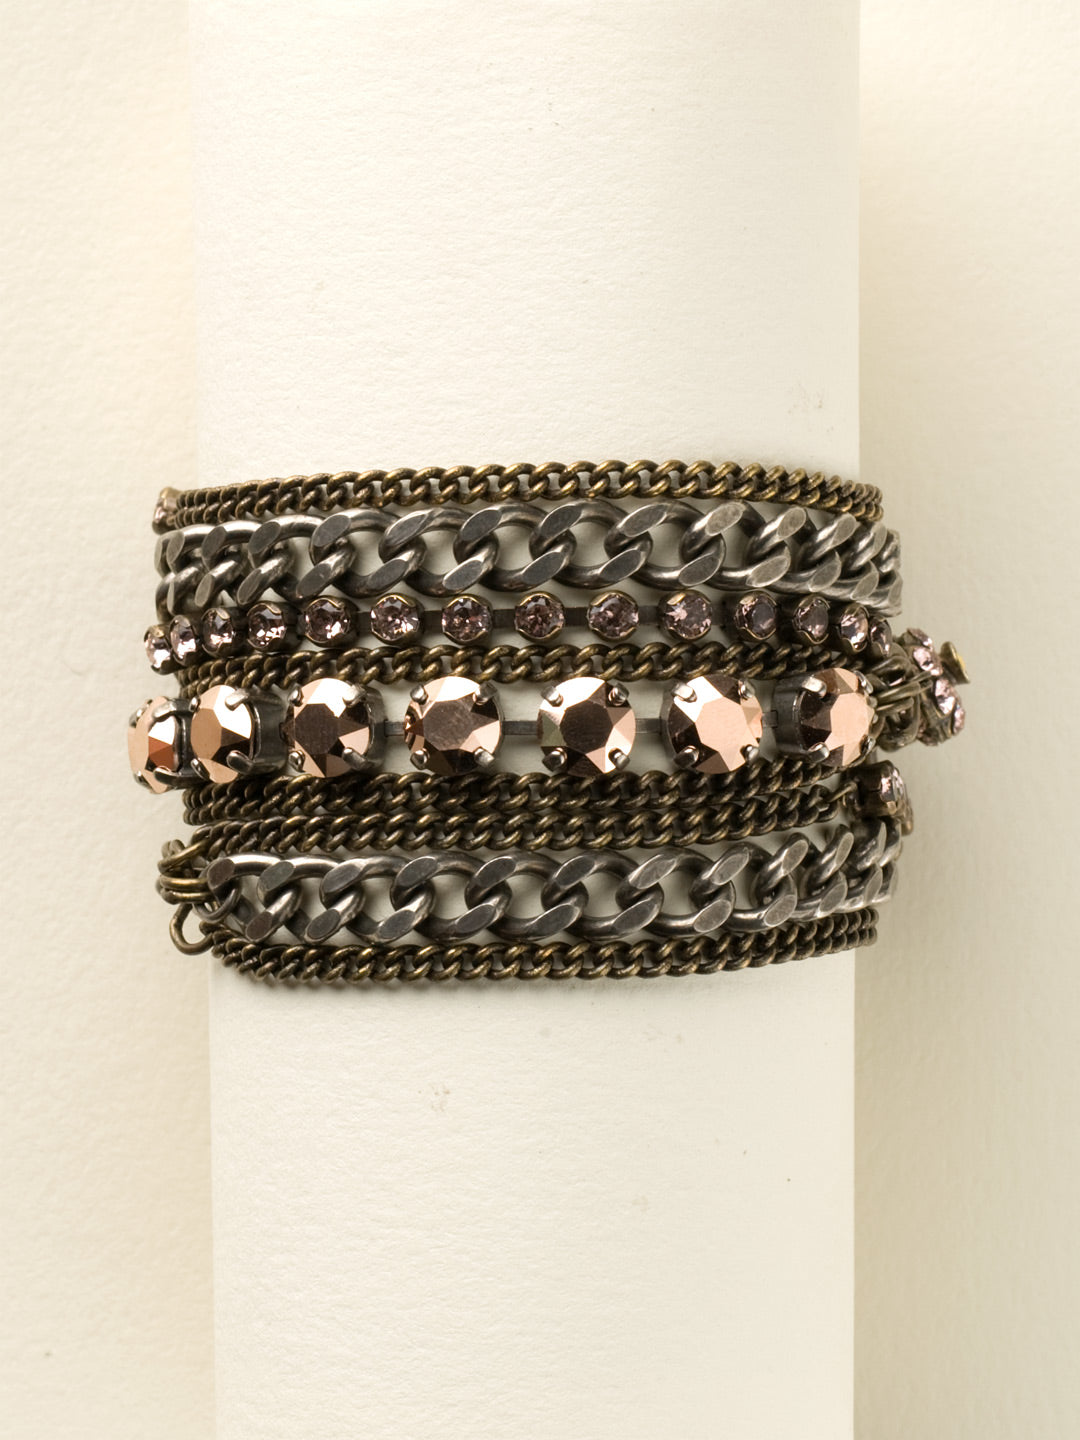 Mixed Metal and Crystal Layered Bracelet - BDD7MXRG